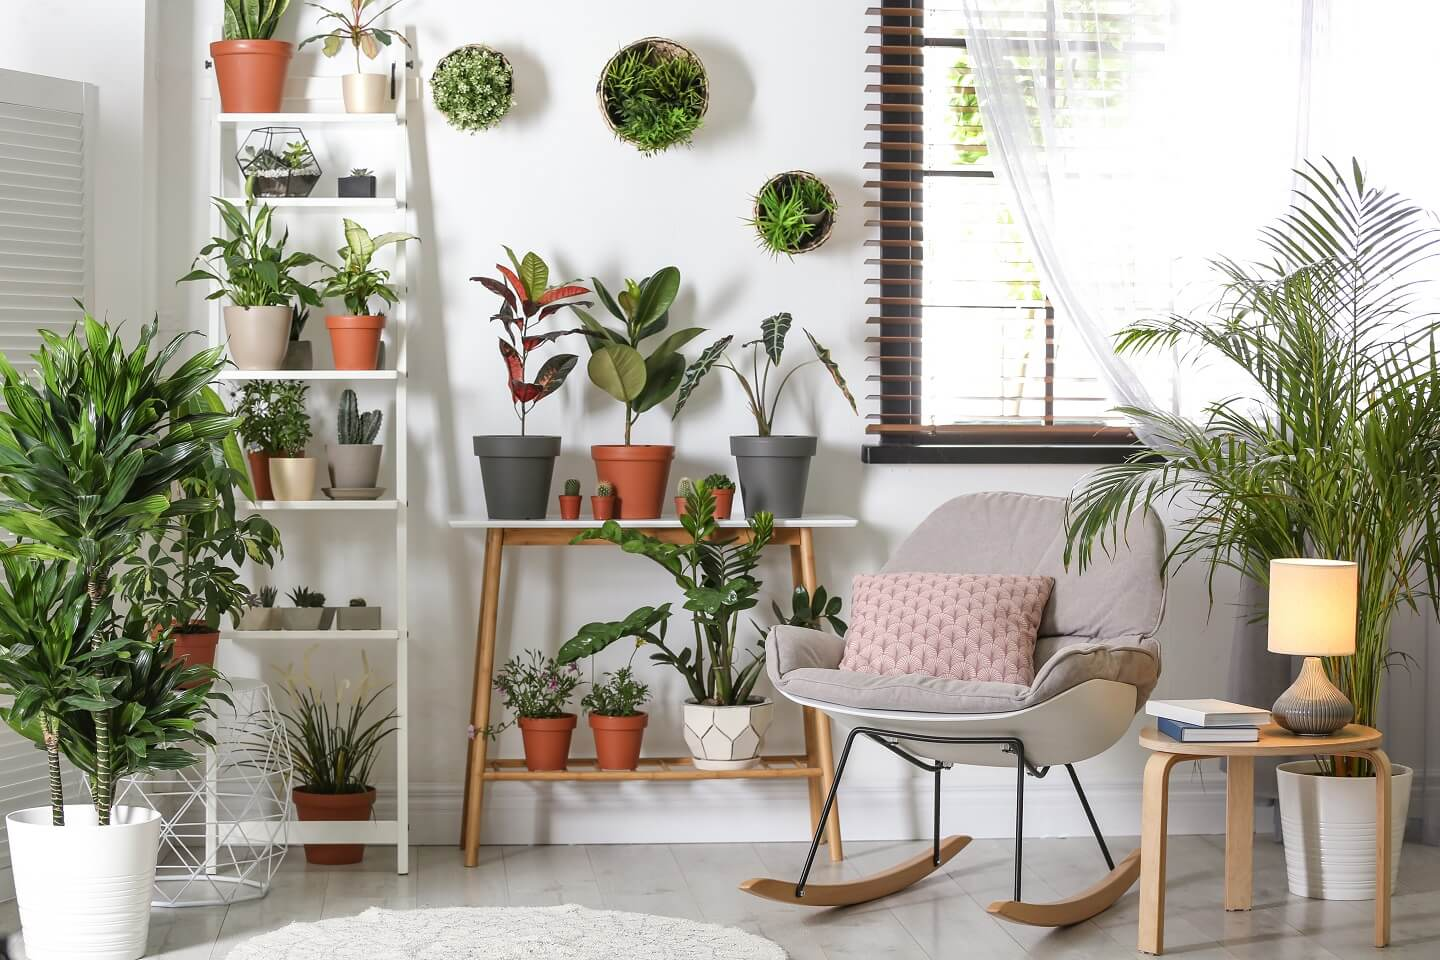 Living Room Indoor Plant Ideas To Give Your Home A Refreshing Look